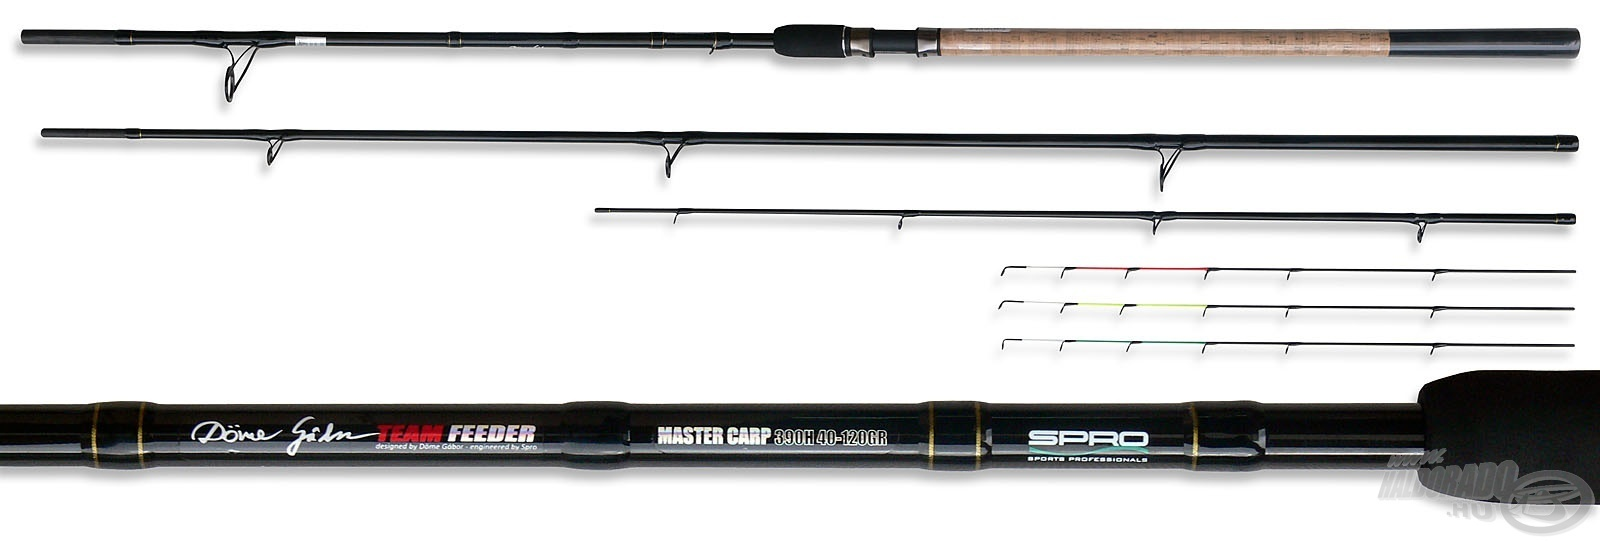 SPRO Team Feeder Master Carp 390H - by D�me G�bor 21500Ft